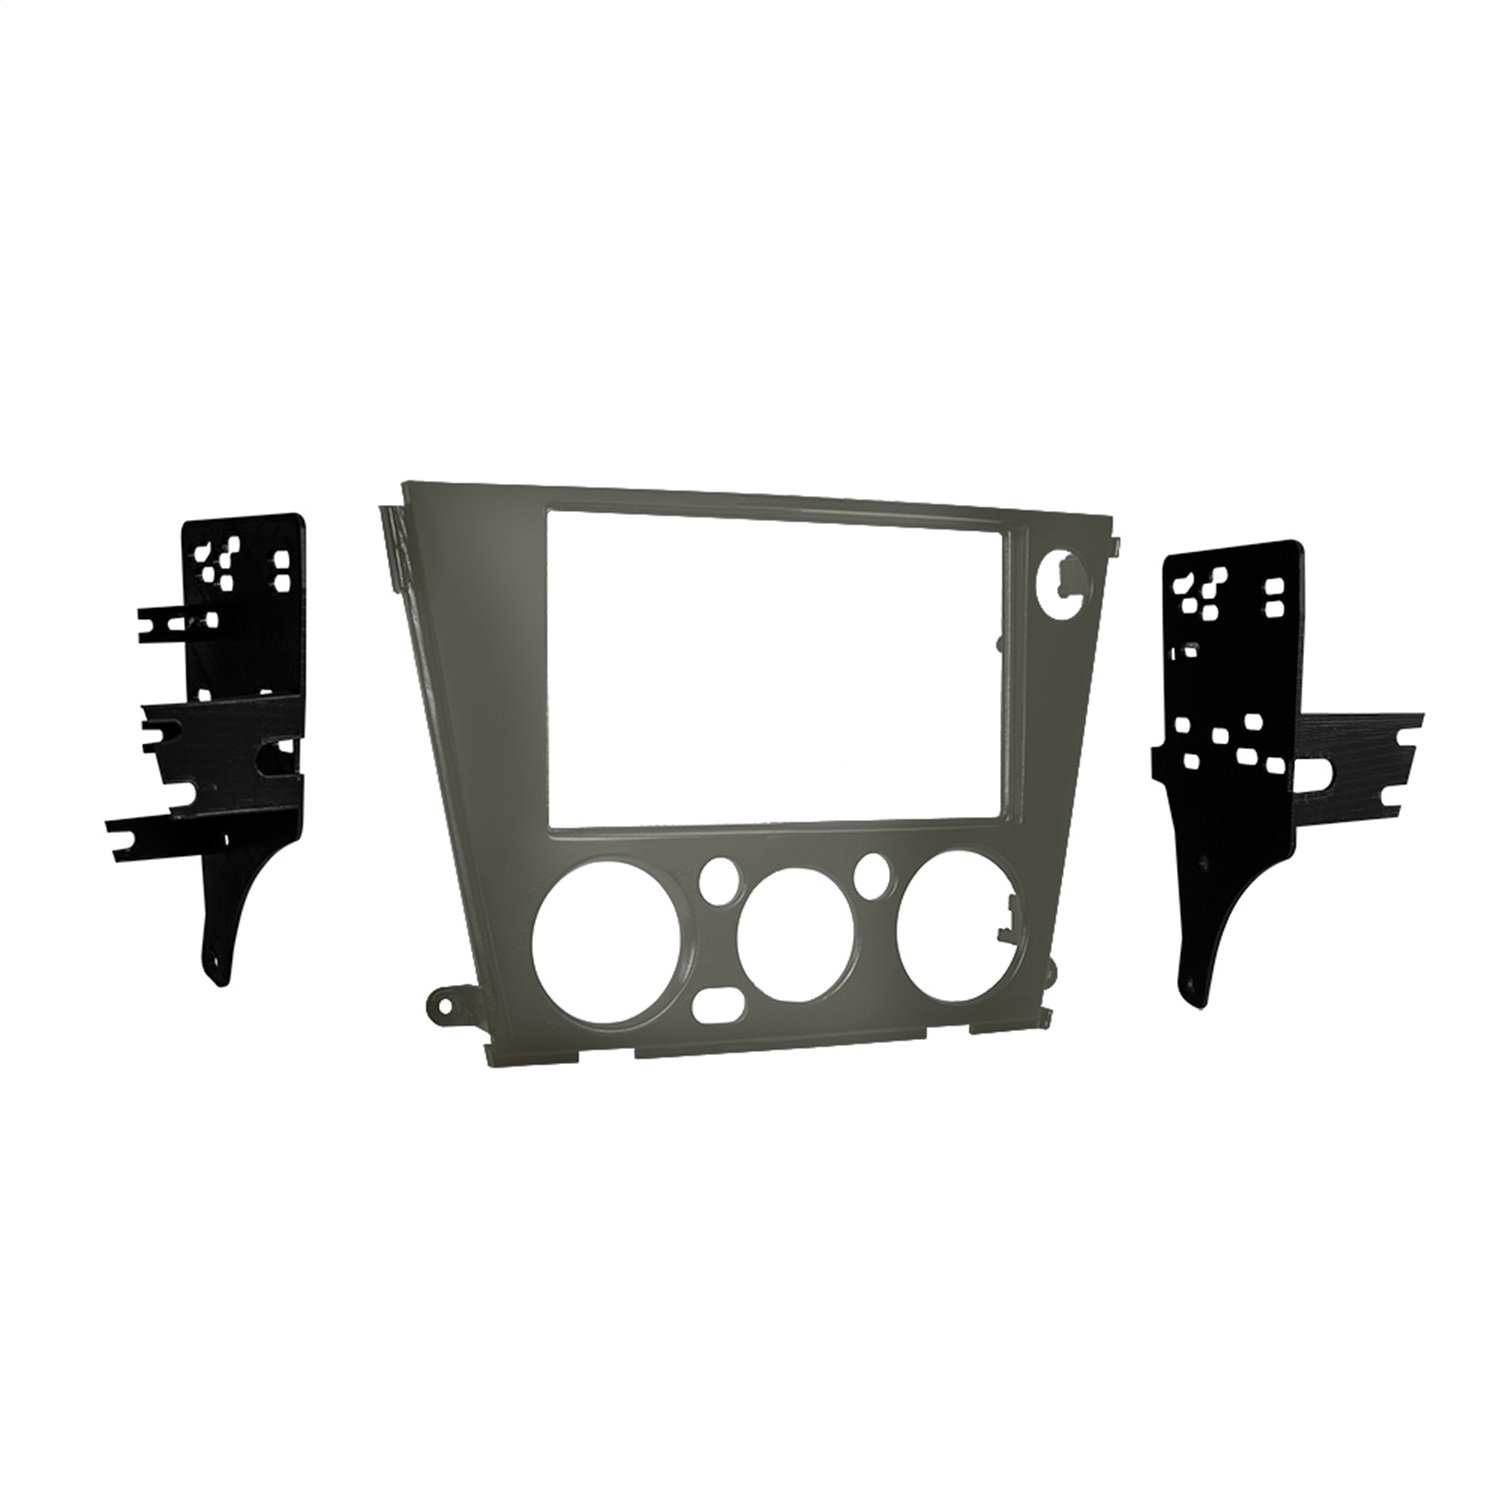 Metra 95-8901 Double DIN Dash Kit for Subaru Legacy and Outback 2005-2009 (Black)